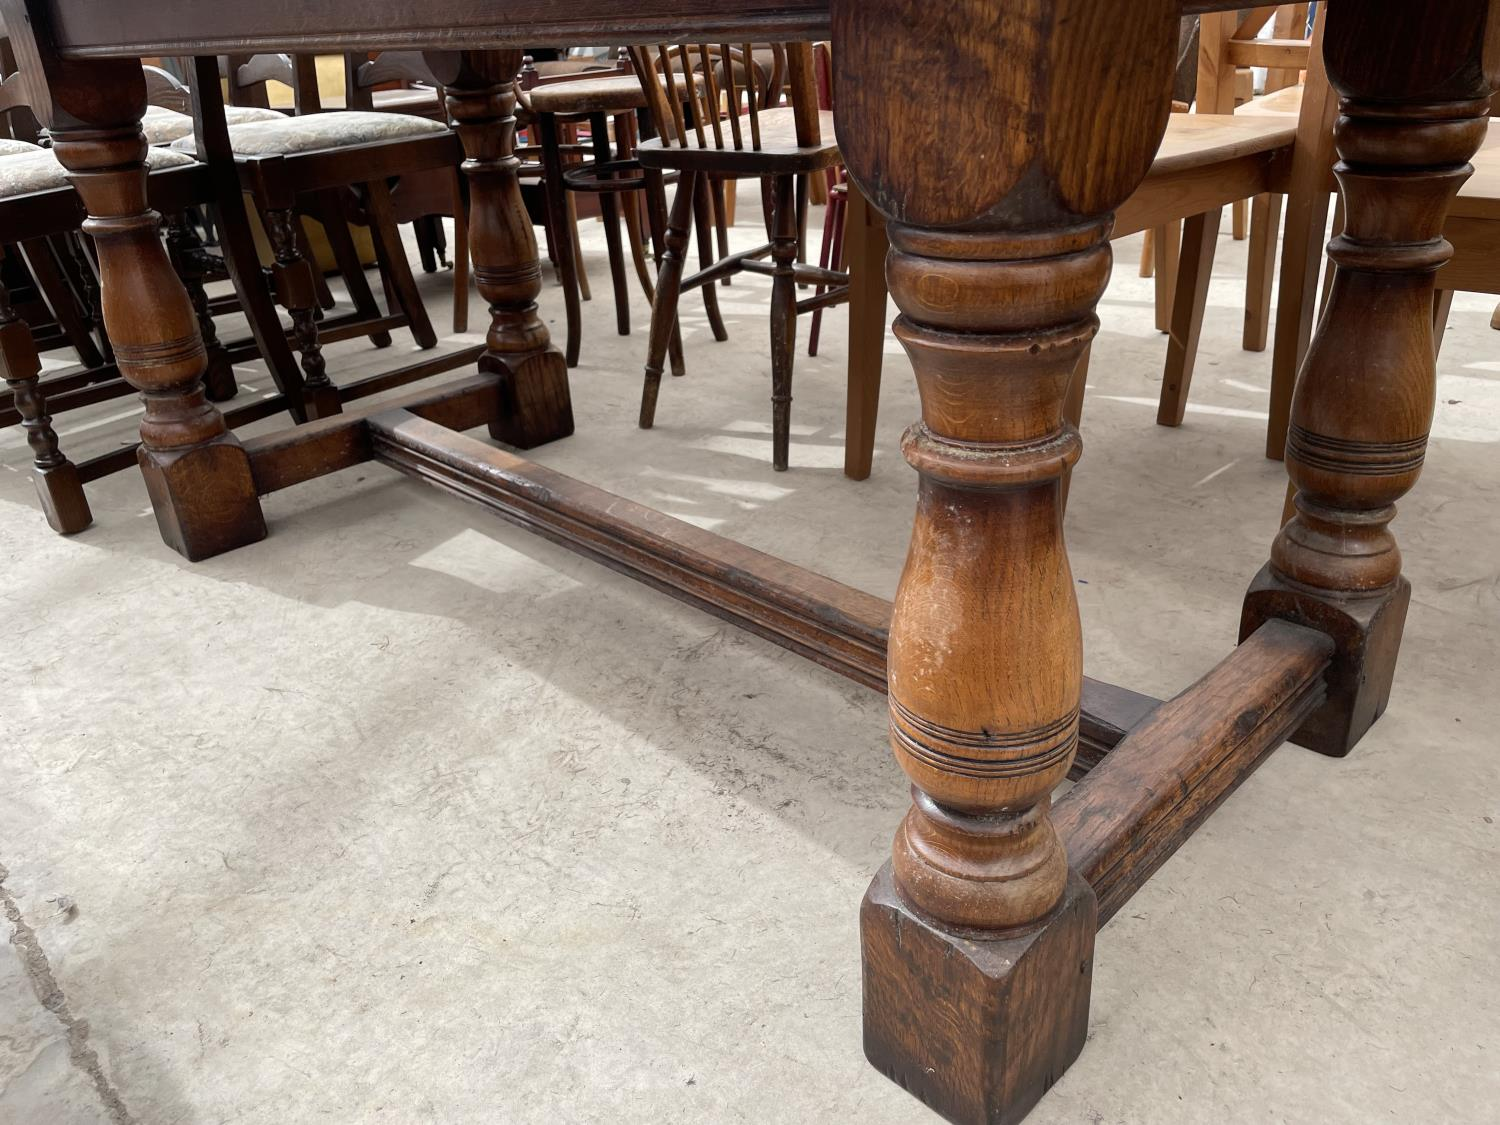 """A GEORGIAN STYLE OAK REFECTORY DINING TABLE ON TURNED LEGS, 72X32"""" - Image 4 of 4"""